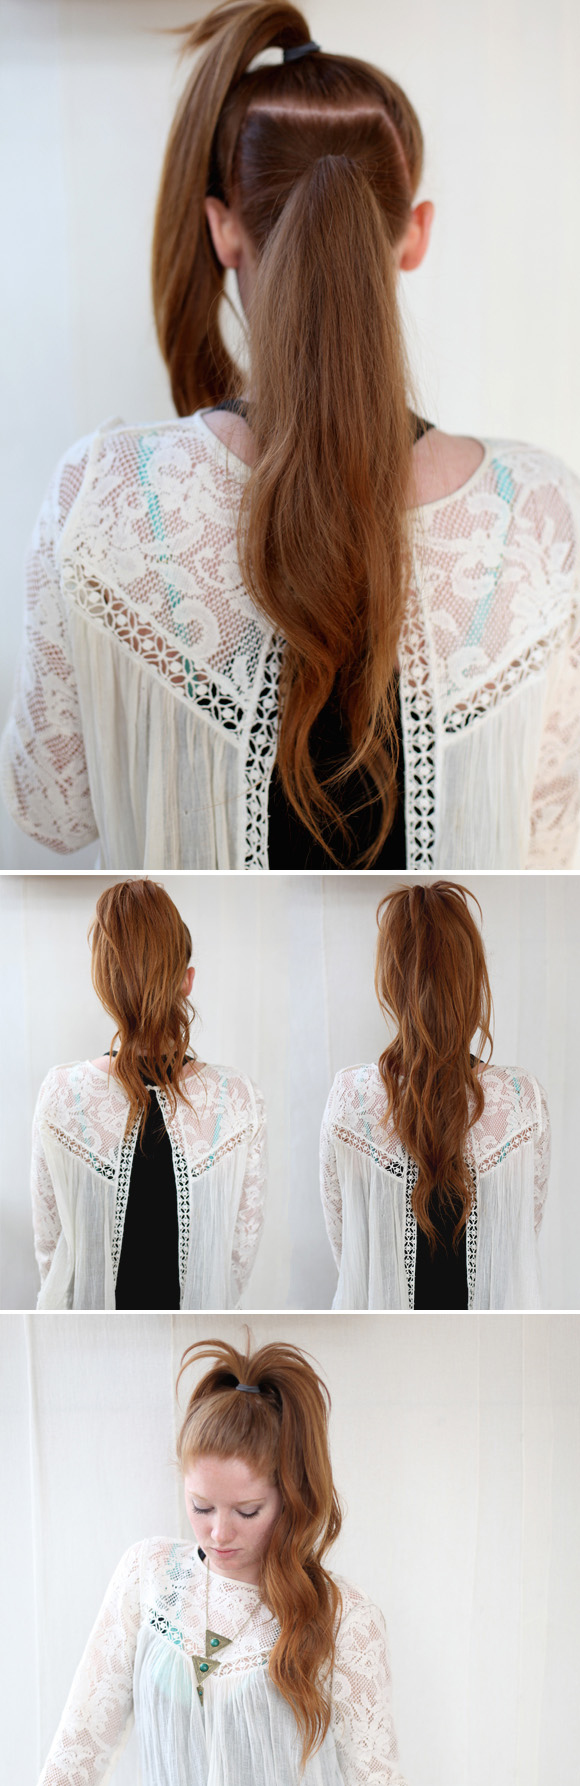 Sensational 23 Five Minute Hairstyles For Busy Mornings Hairstyles For Women Draintrainus